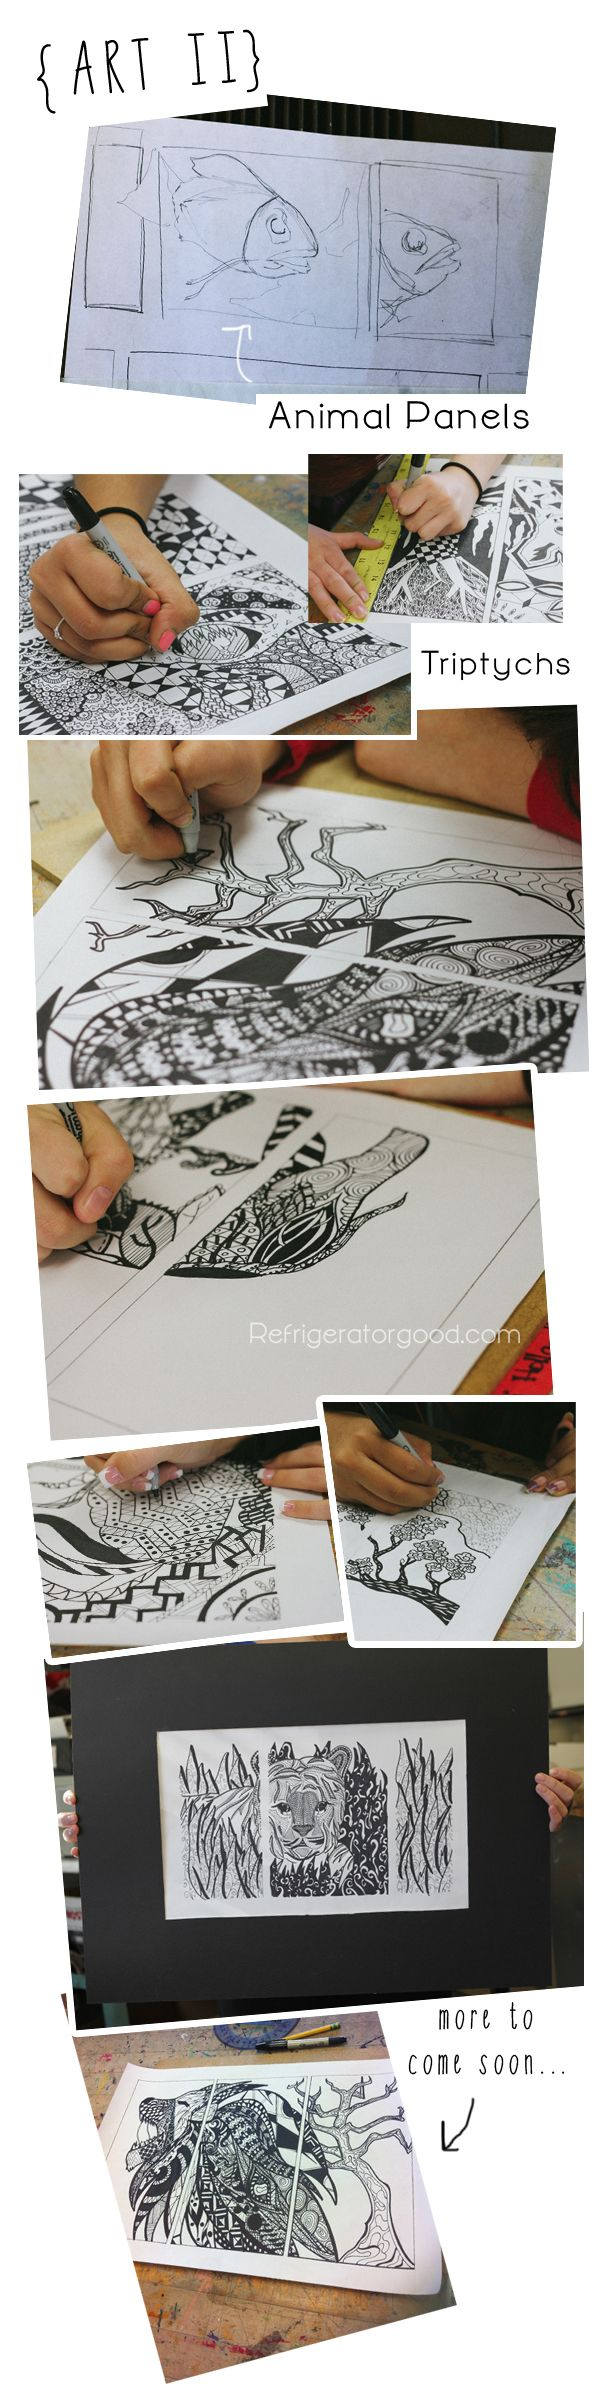 Line Art Projects Middle School : Best art lesson ideas drawing images on pinterest